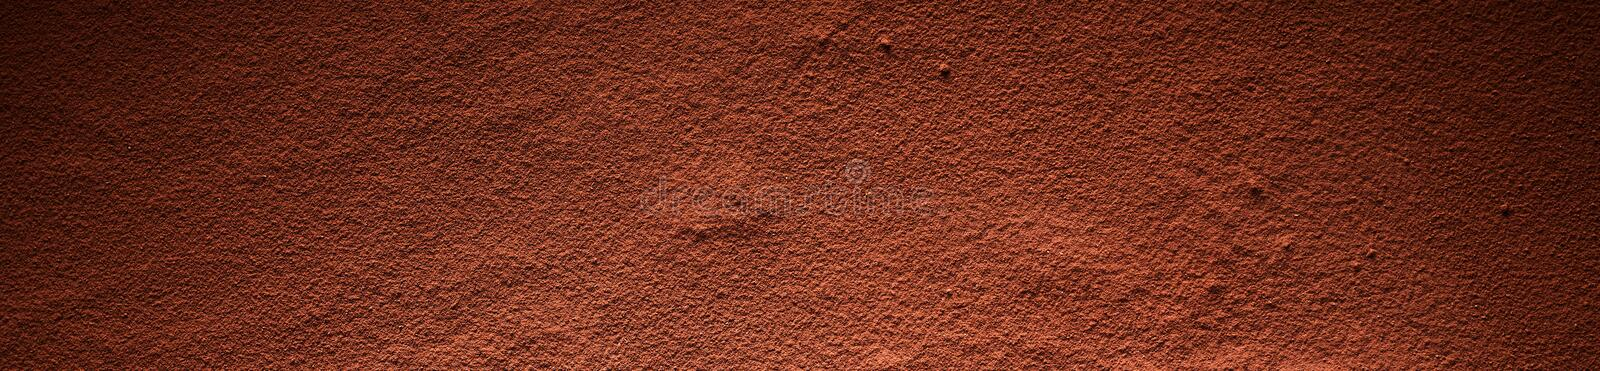 Full frame of cocoa powder surface. Full frame background banner of brown cocoa powder surface with darkened corners royalty free stock photo